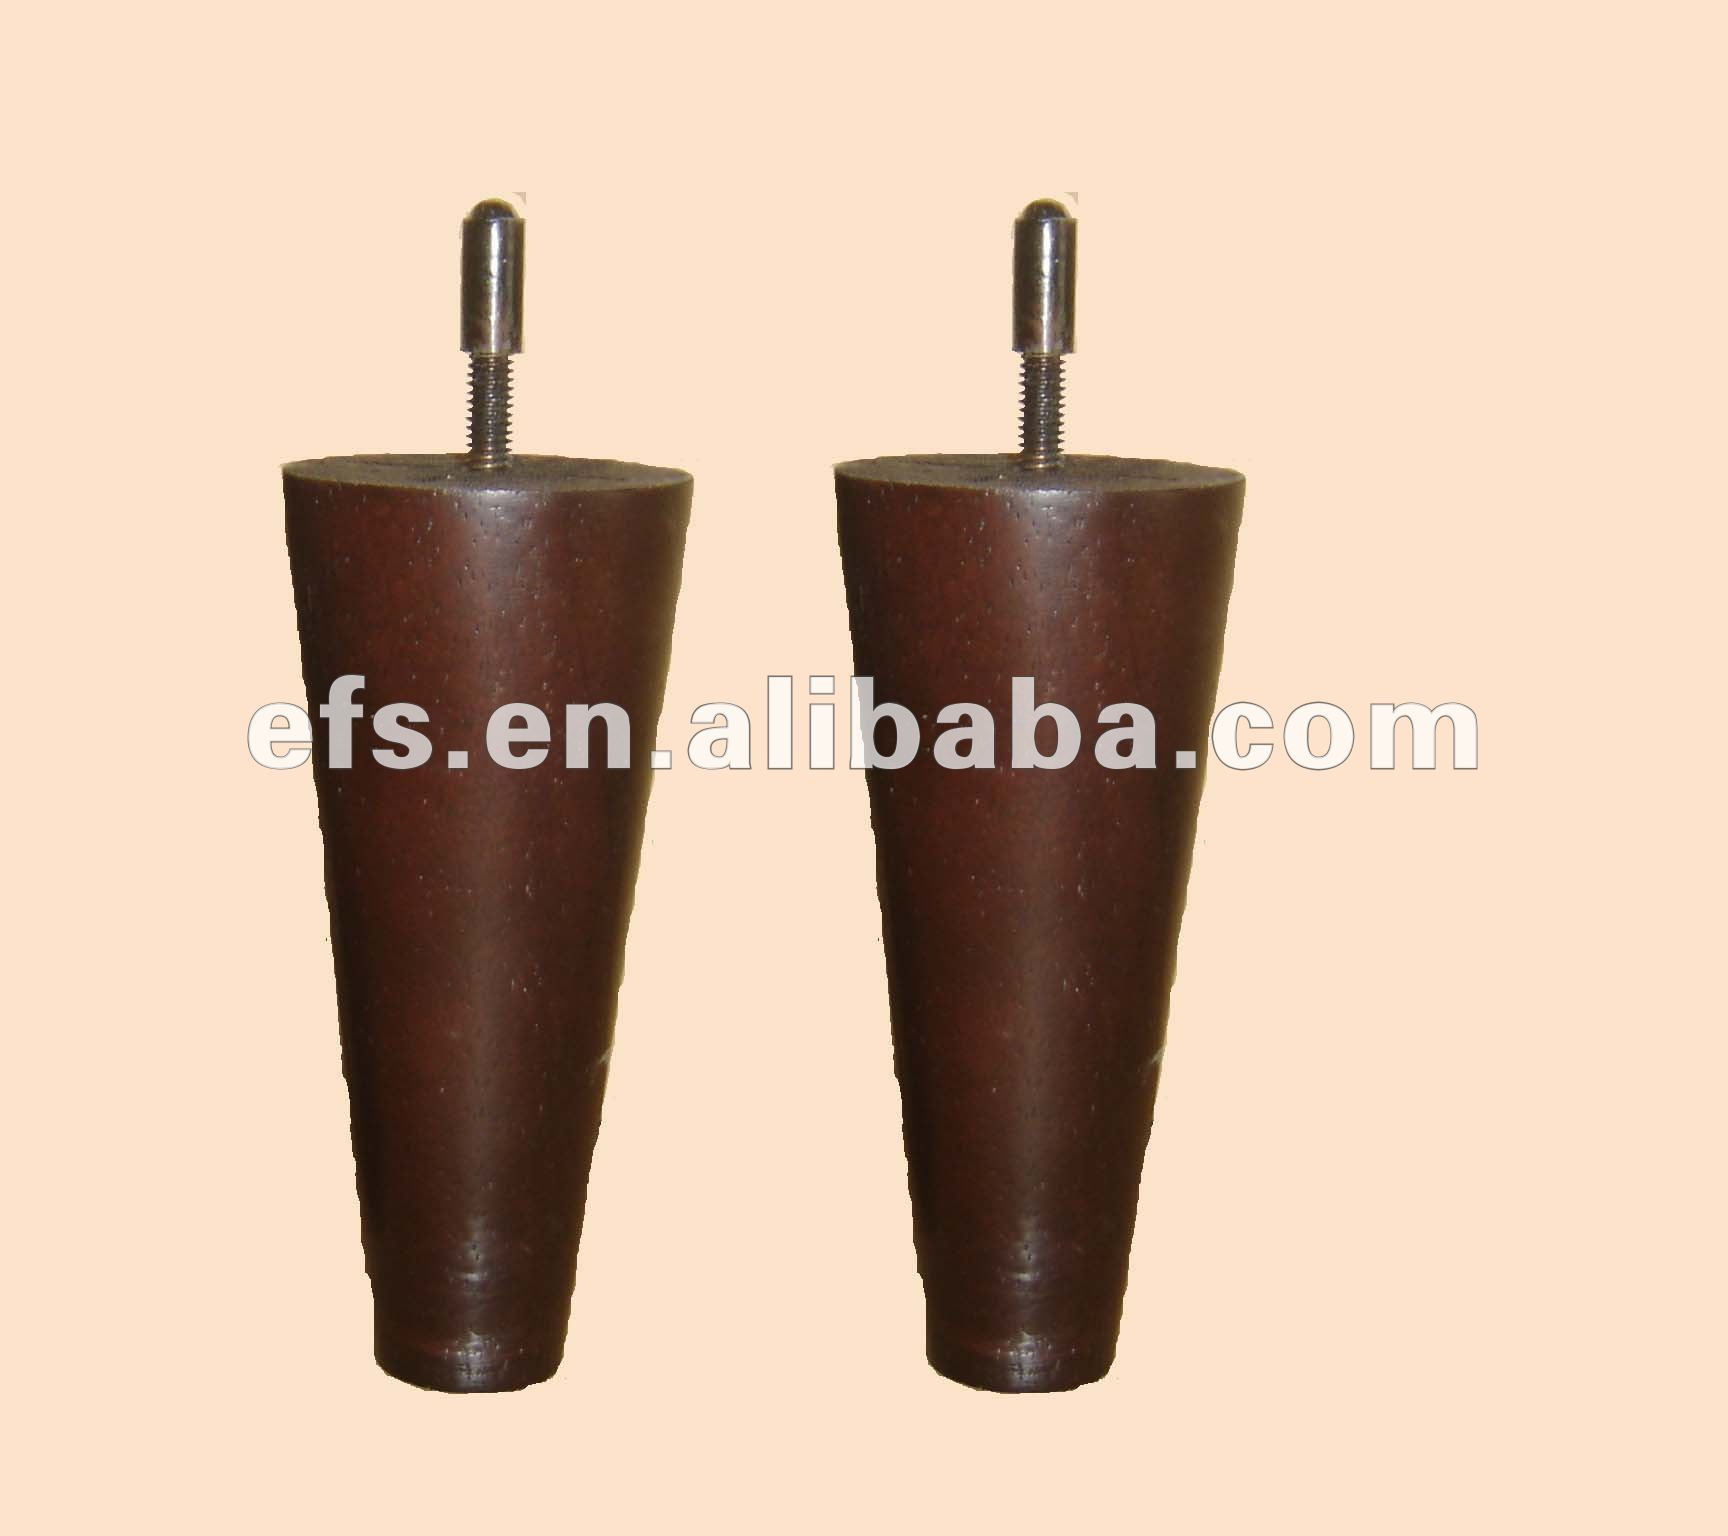 Modern Bed Legs Modern Bed Legs Suppliers and Manufacturers at